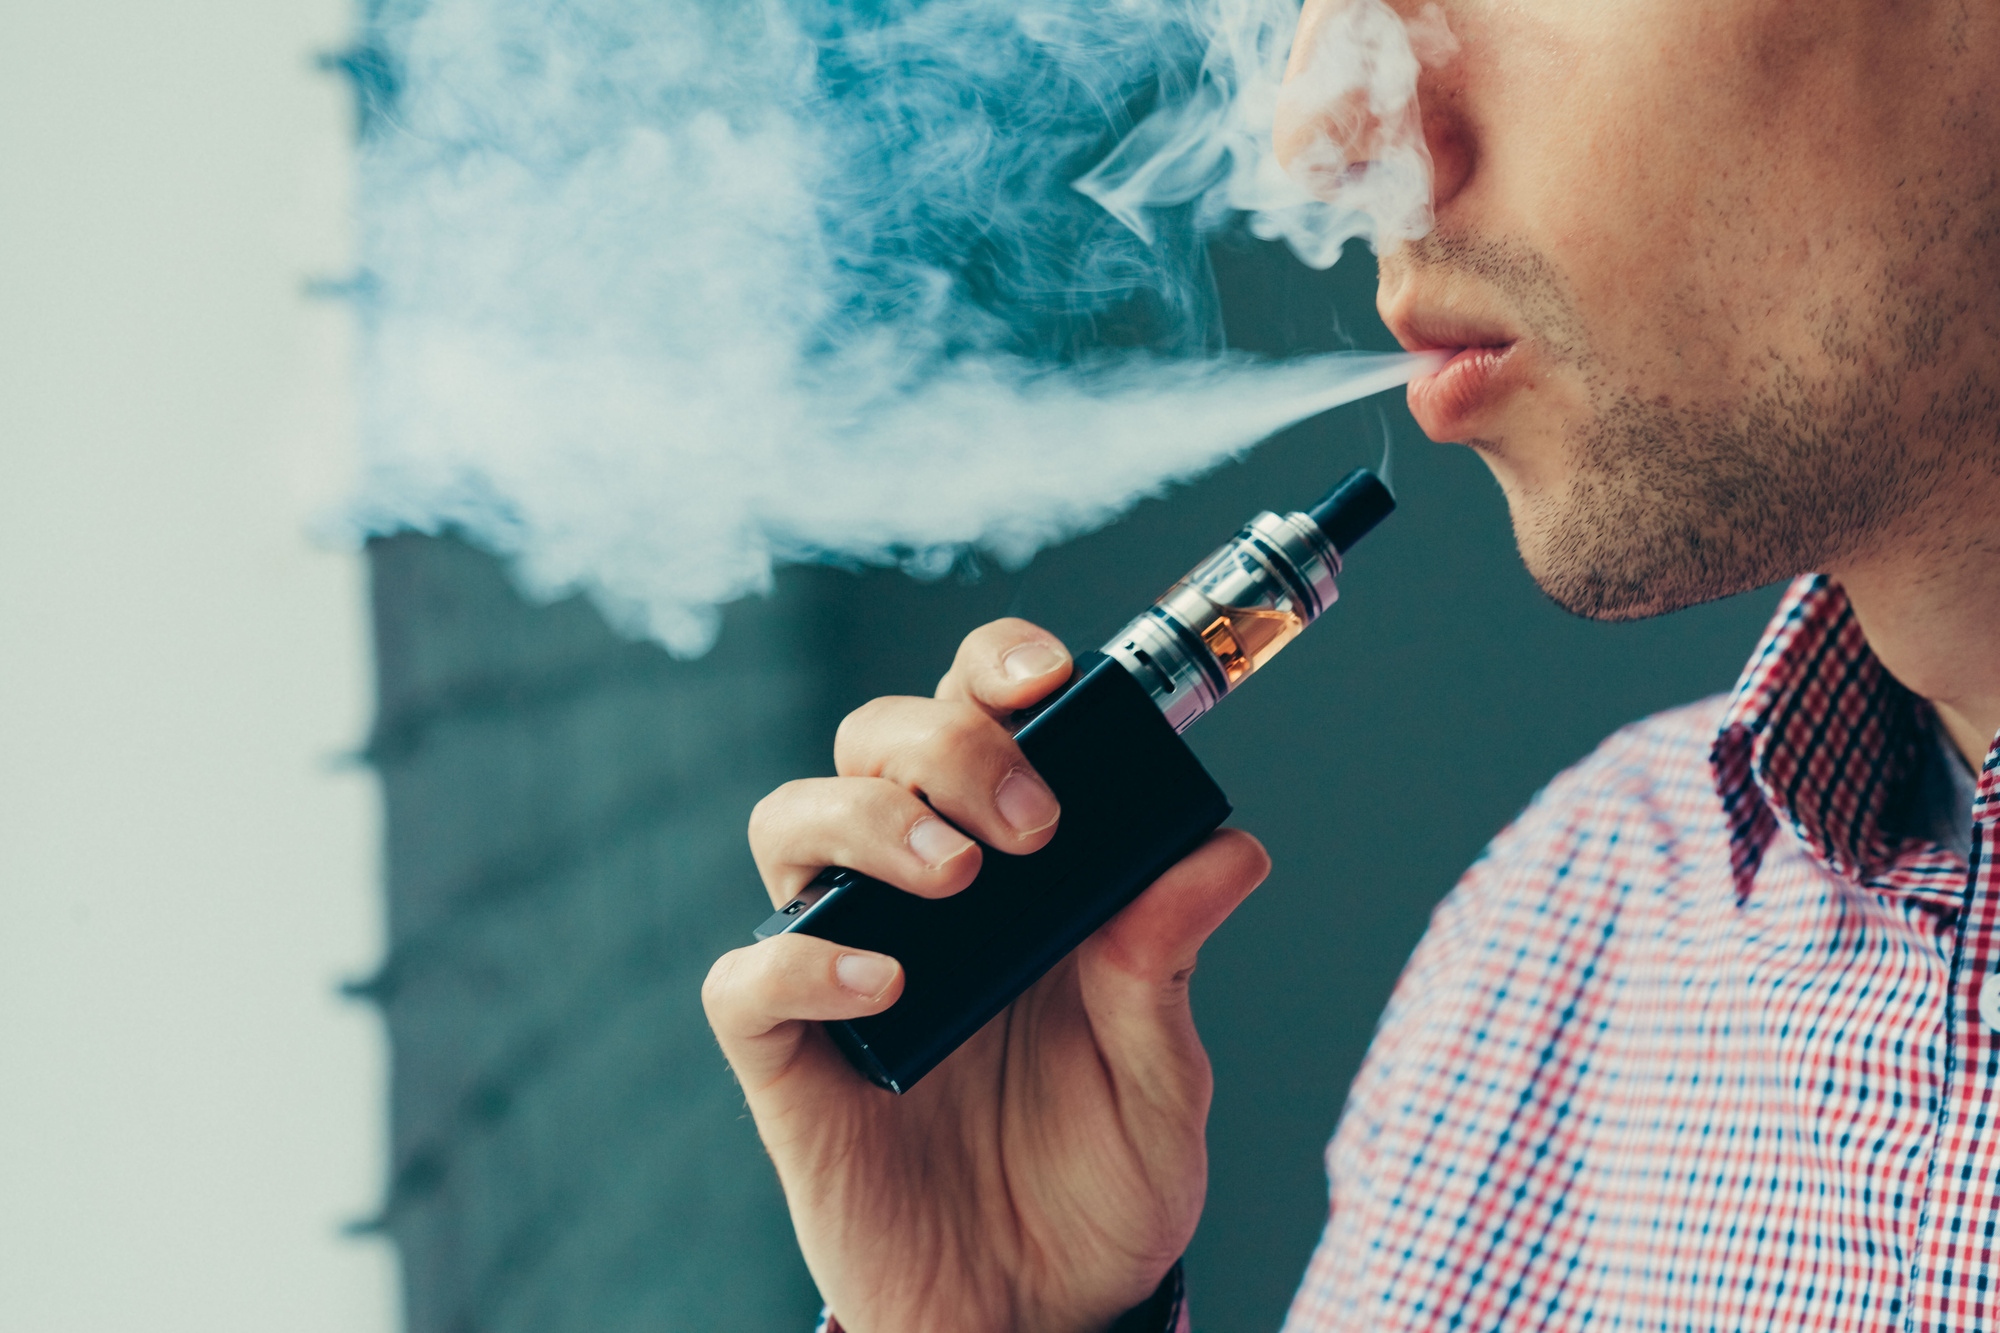 overcome depression with Vaping